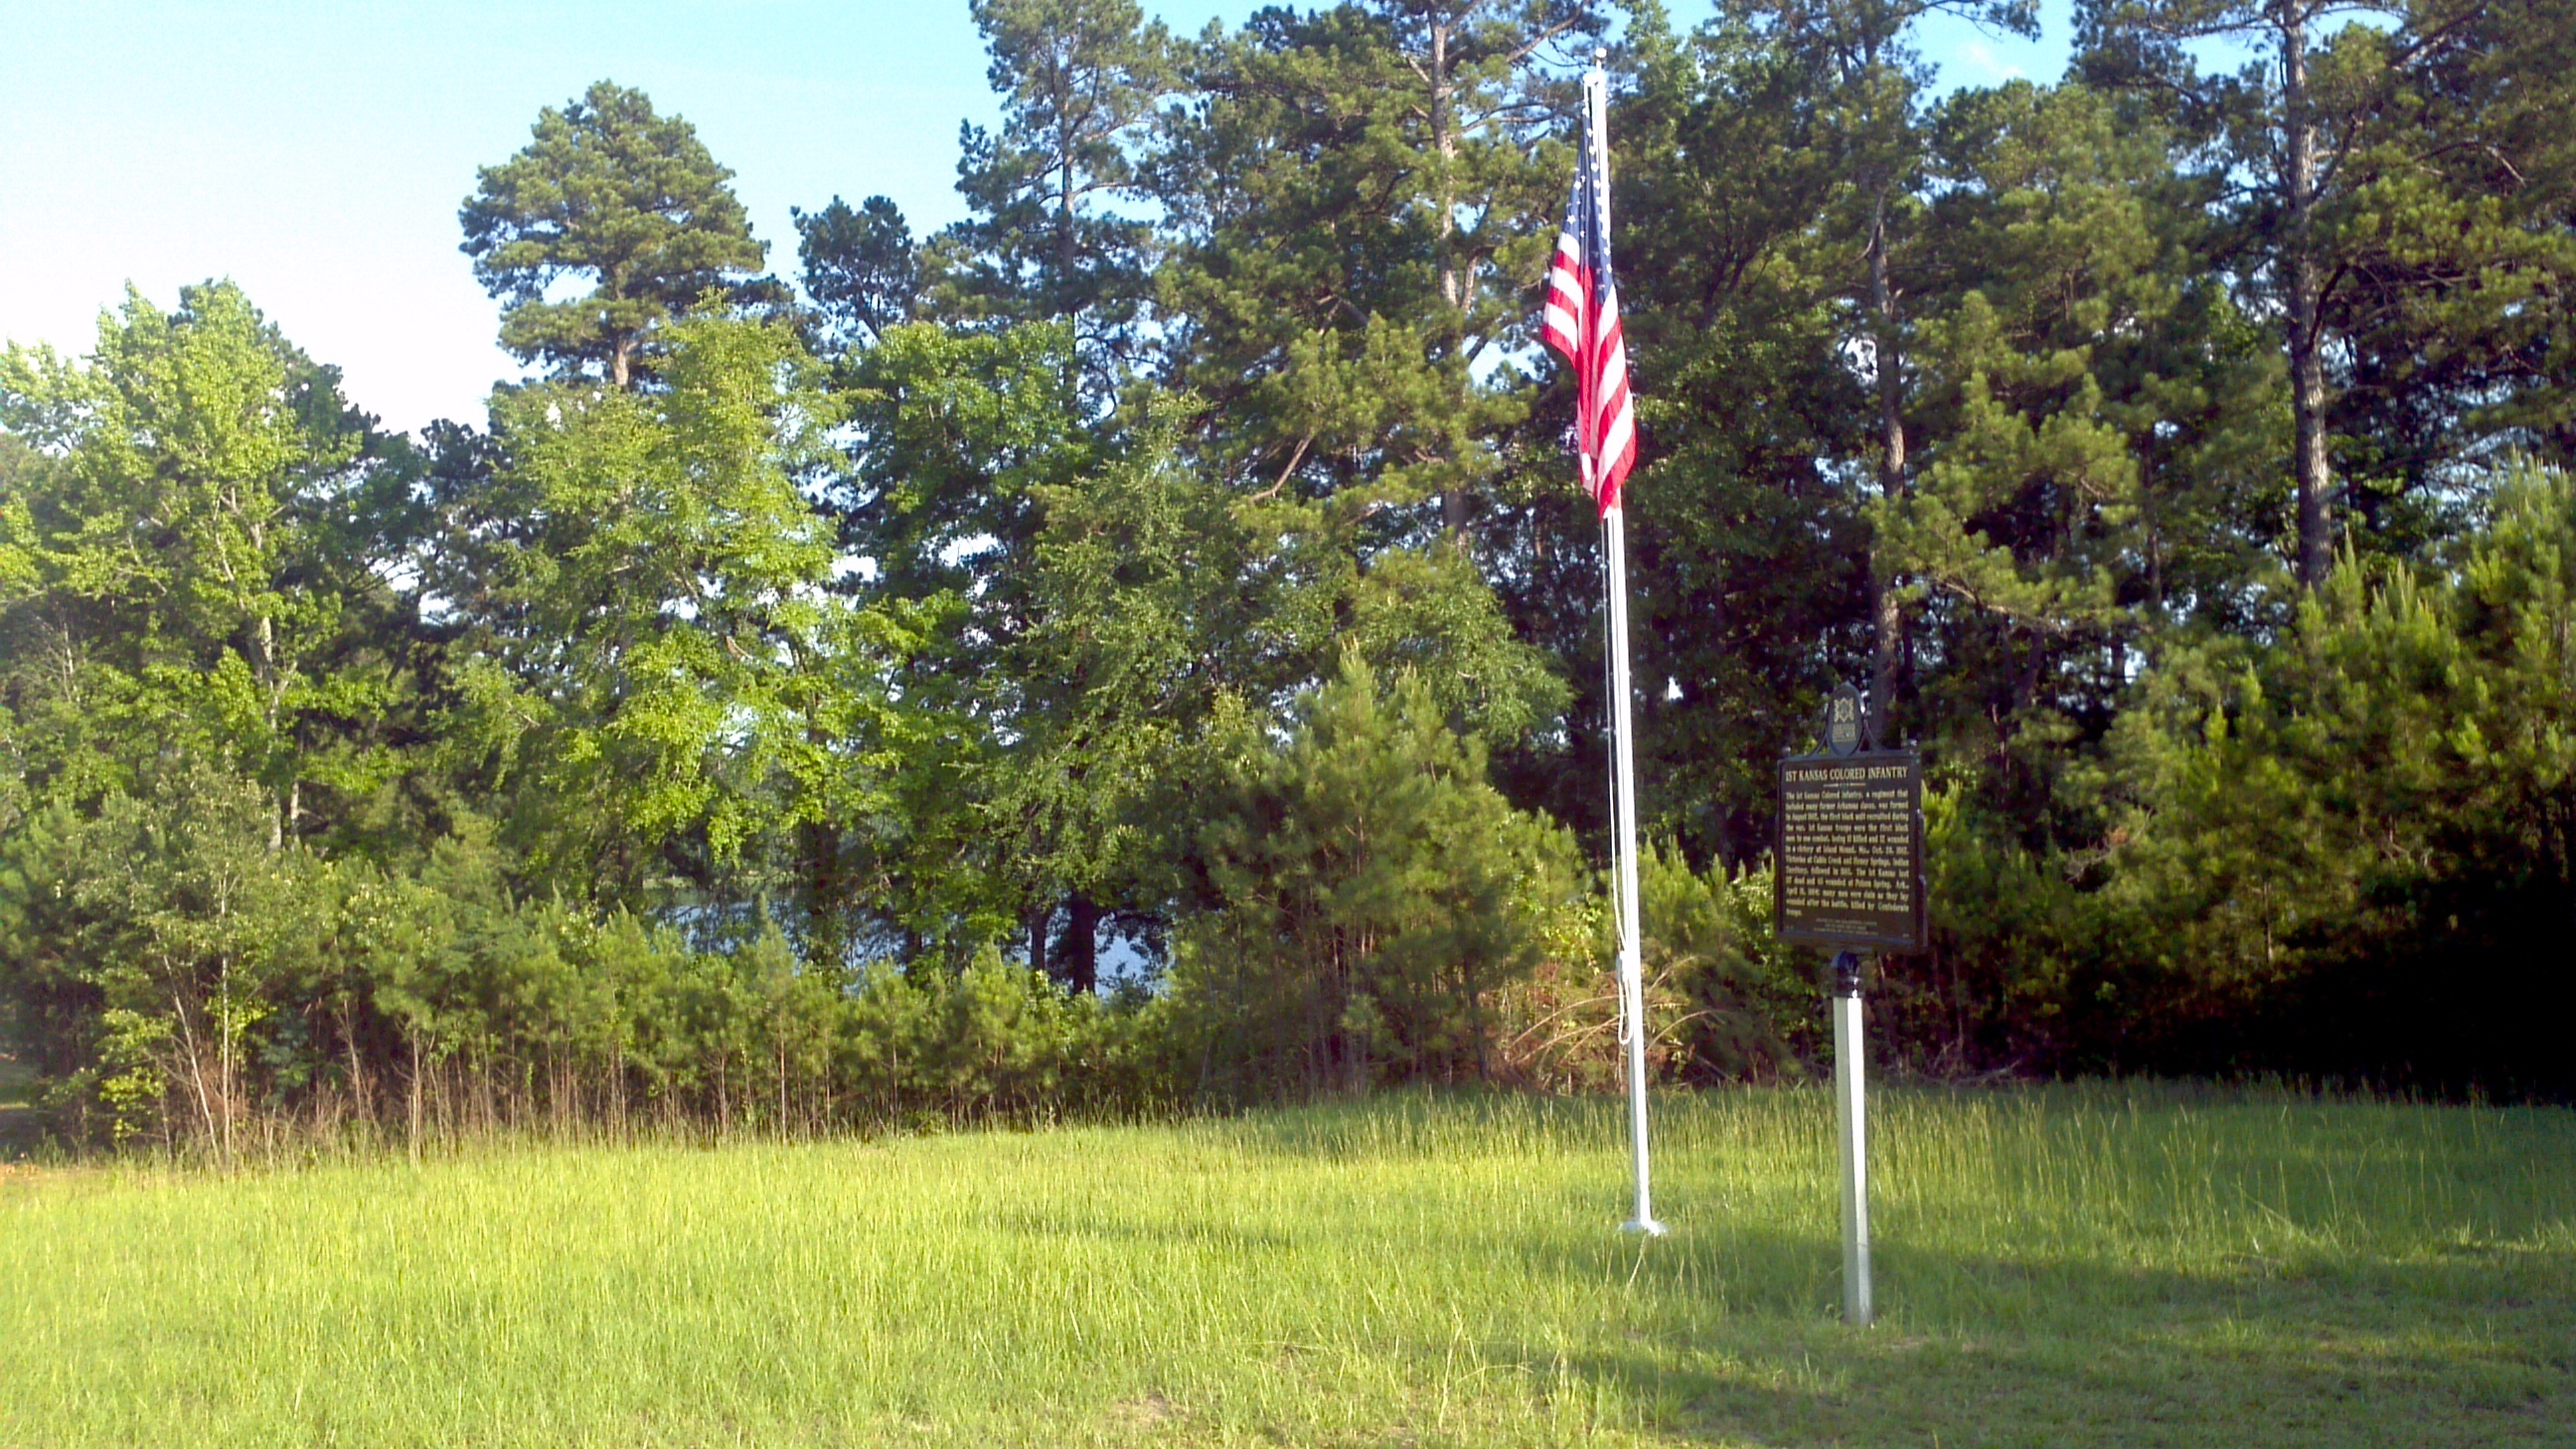 The marker is located near a single American flag that honors the Union soldiers who brought Arkansas back into the nation.